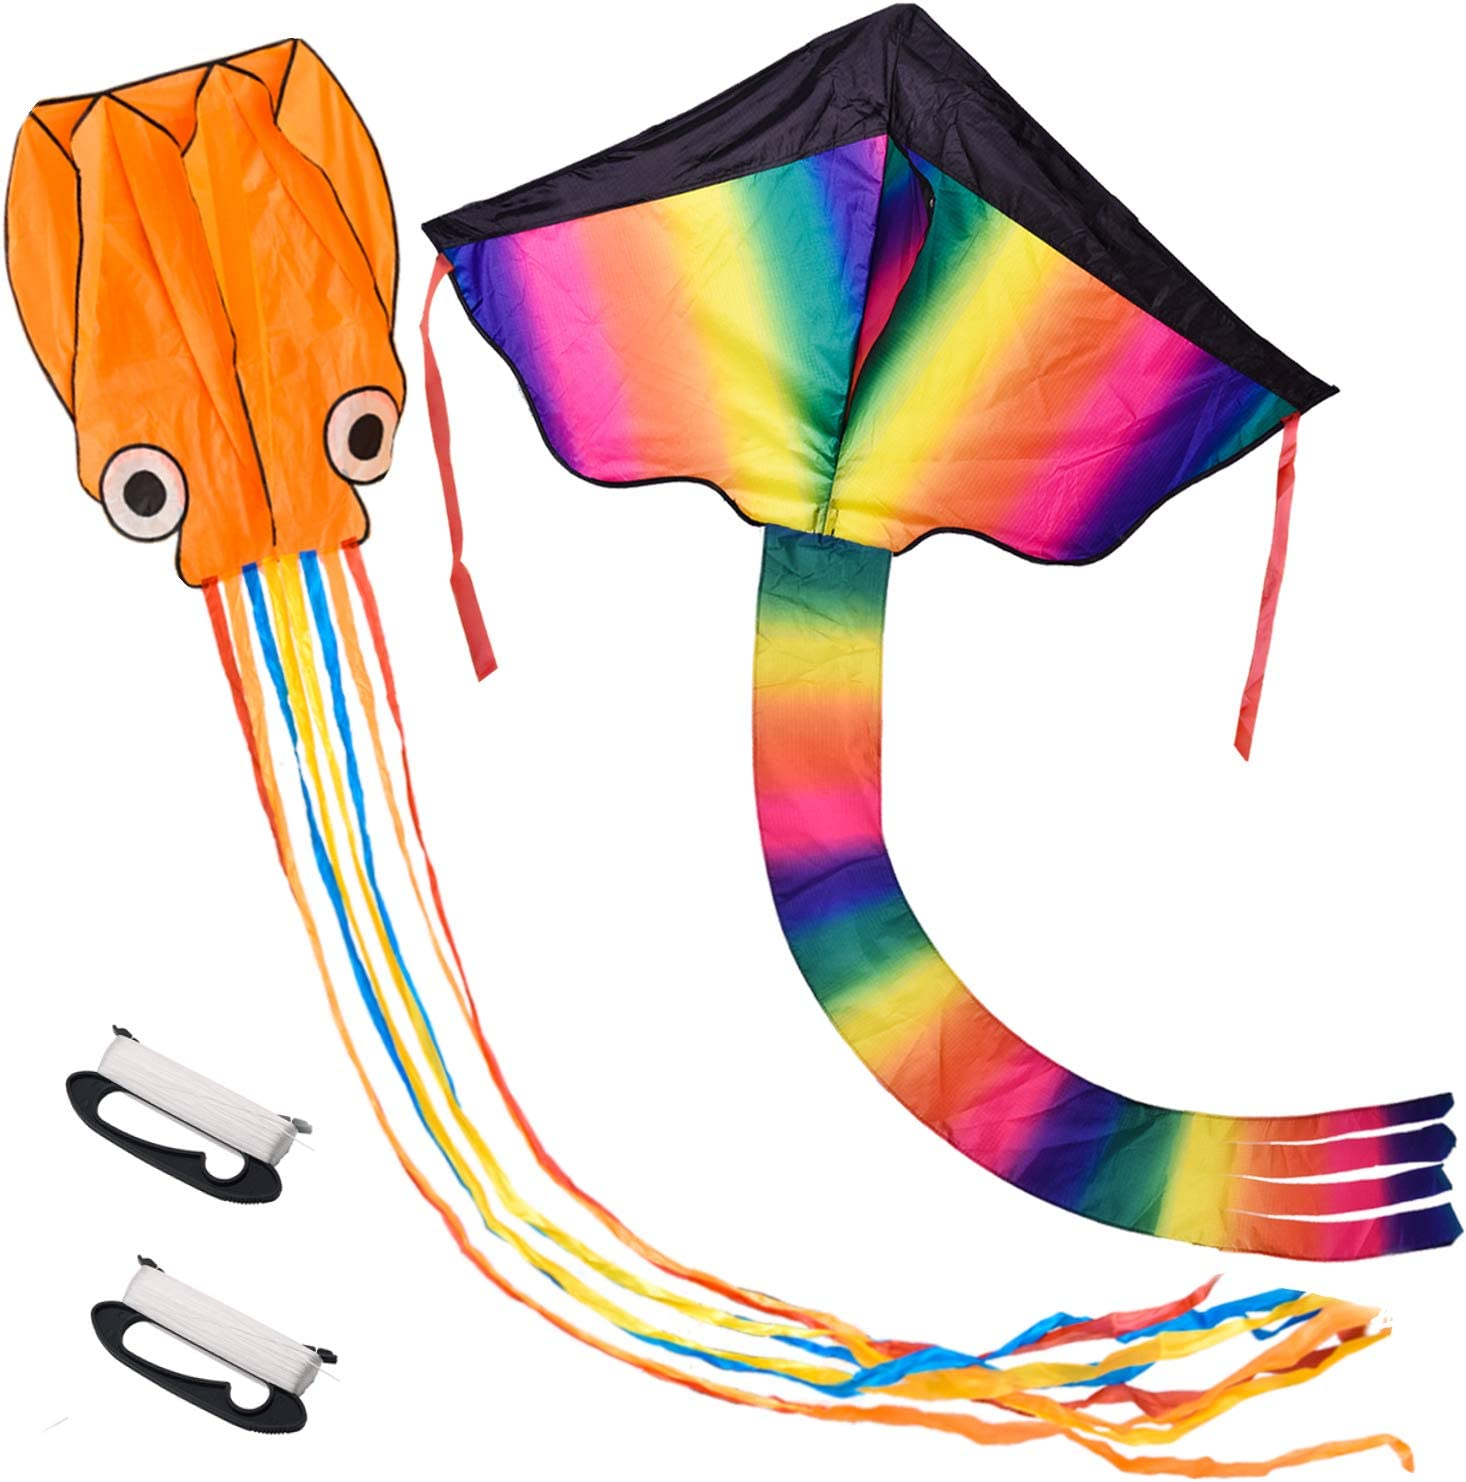 FUN LITTLE TOYS Directly managed store Rainbow and Octopus for Kites K Adults Kids Super beauty product restock quality top